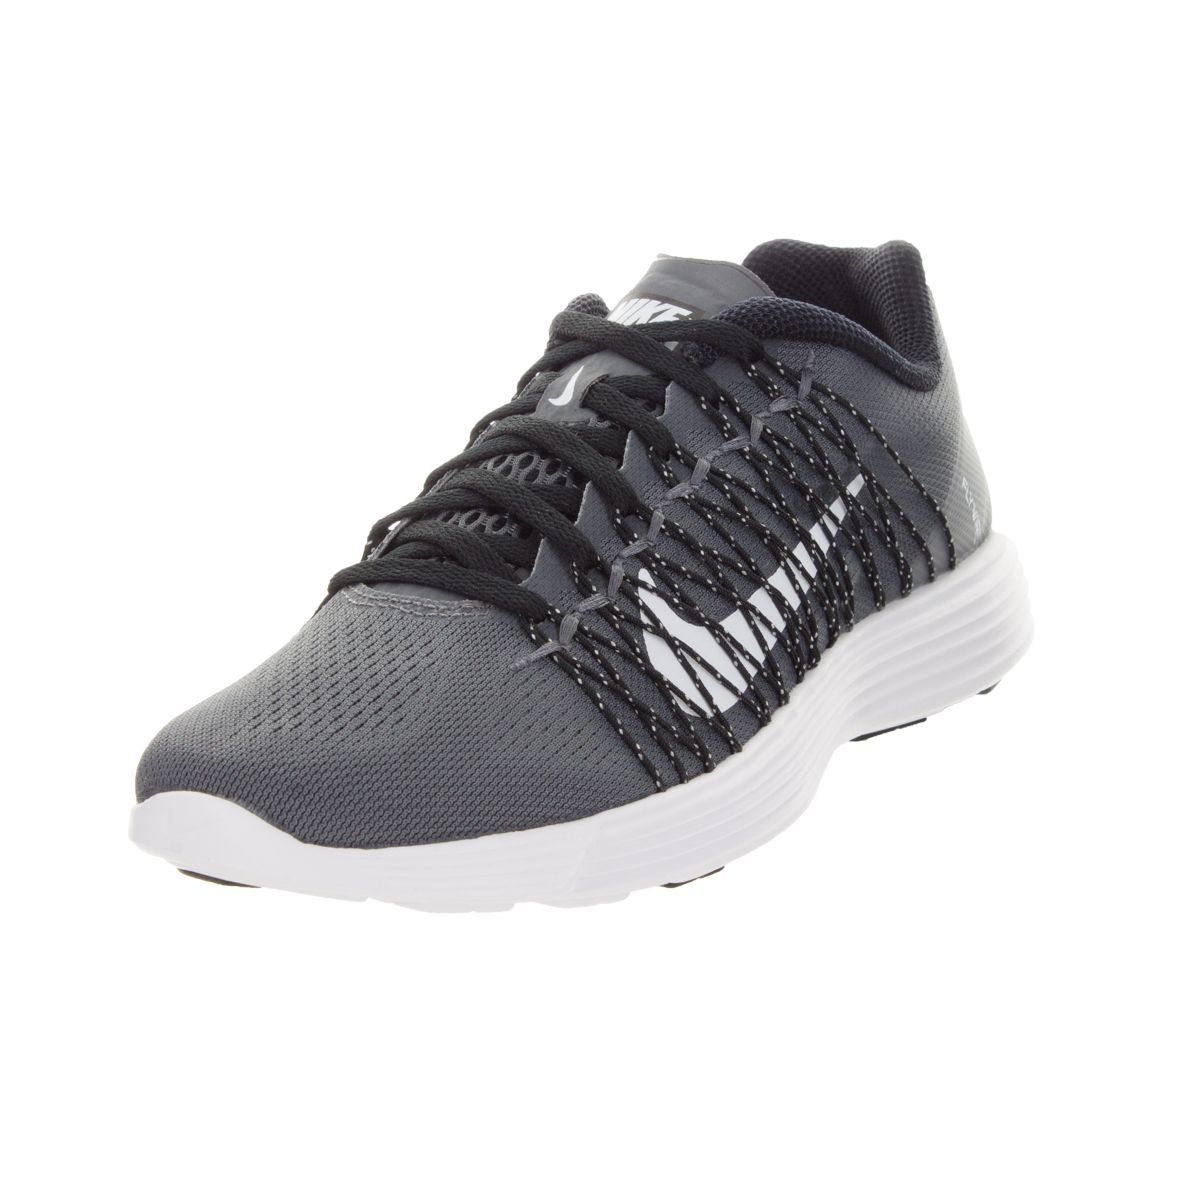 The Nike Lunaracer  3 running shoe features a new mesh upper including engineered mesh, that eliminates the need for overlays, and Dynamic Flywire that allows for a fit that changes along with the sha